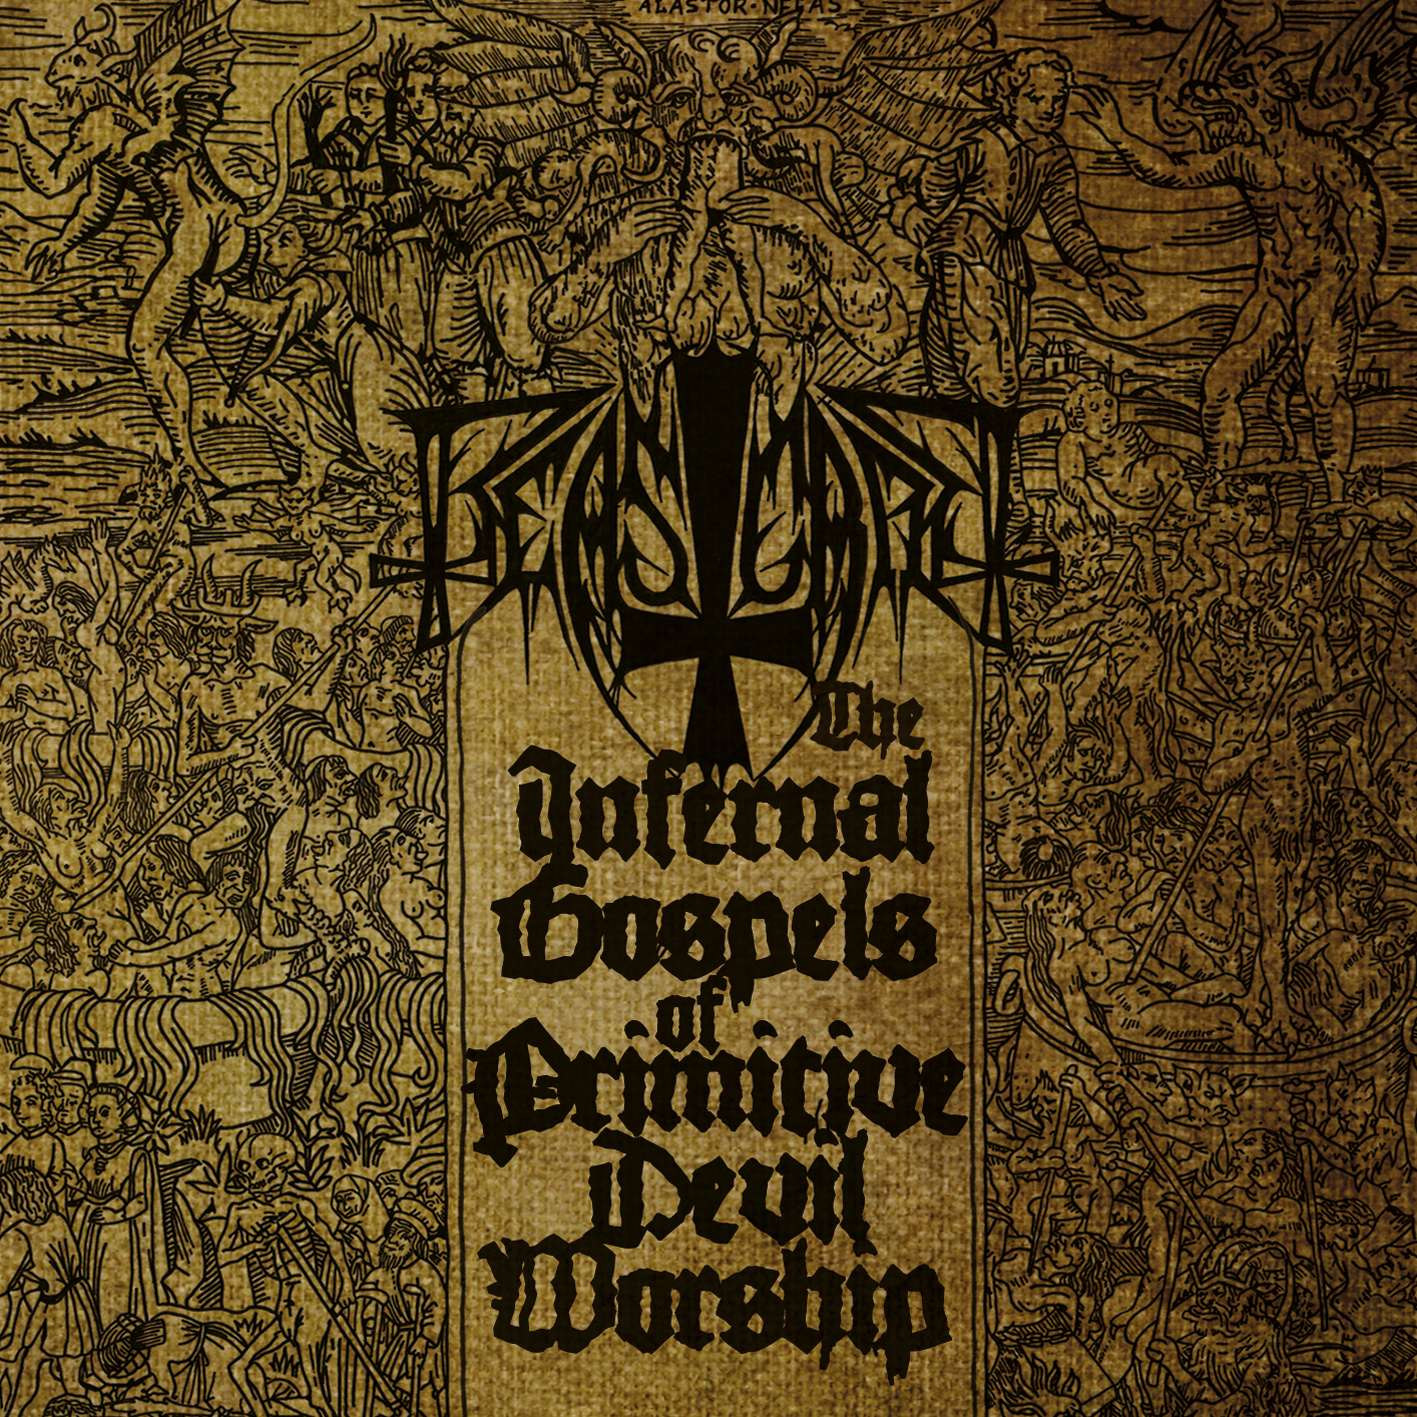 Beastcraft – The Infernal Gospels Of Primitive Devil Worship